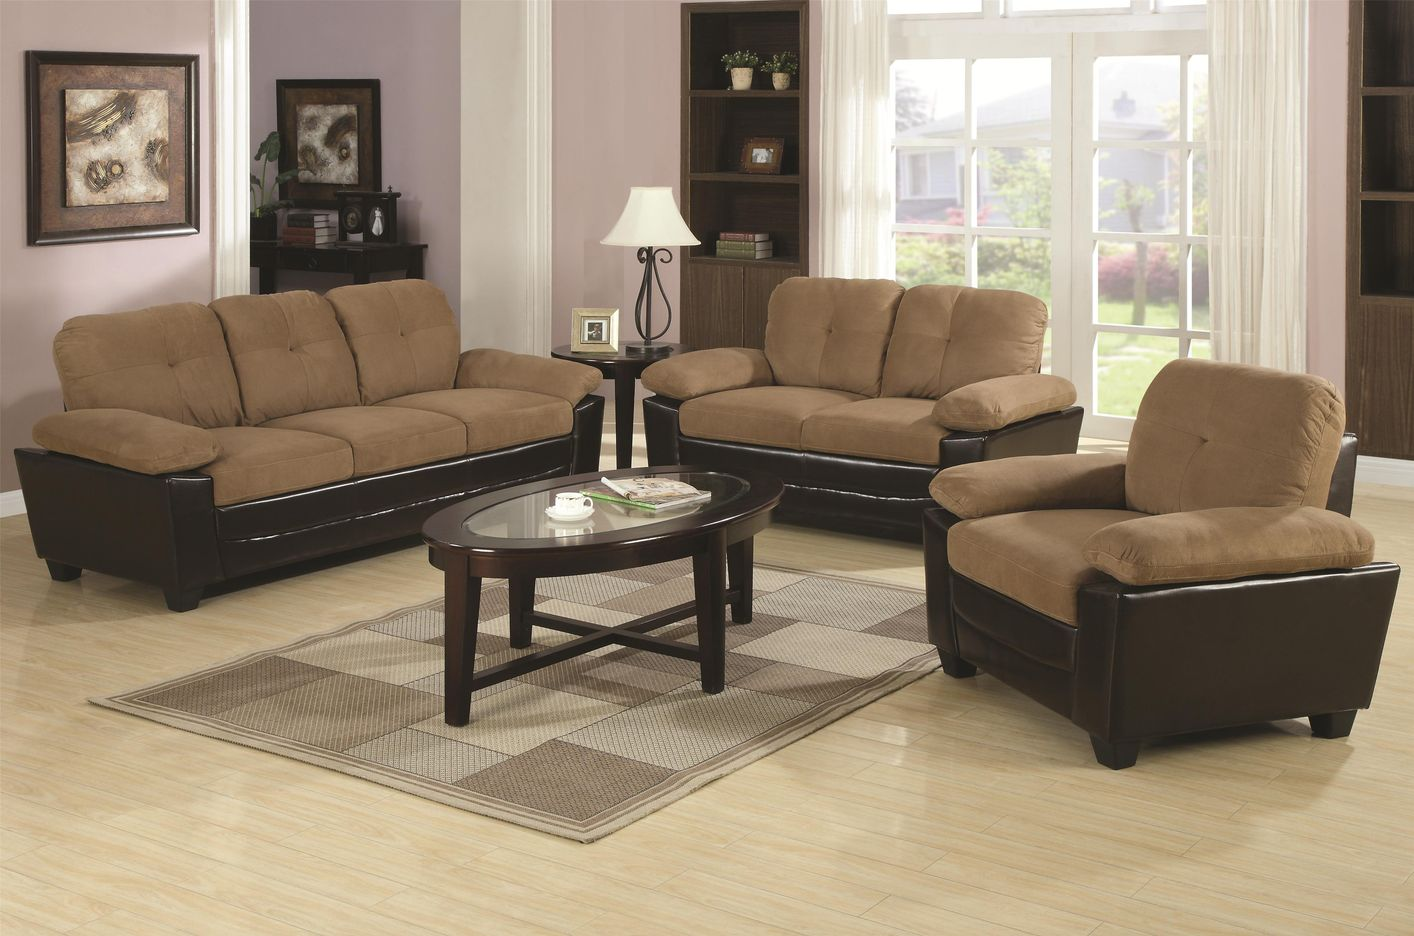 Coaster Mika 502921 502922 Brown Microfiber Sofa And Loveseat Set In Los Angeles Ca